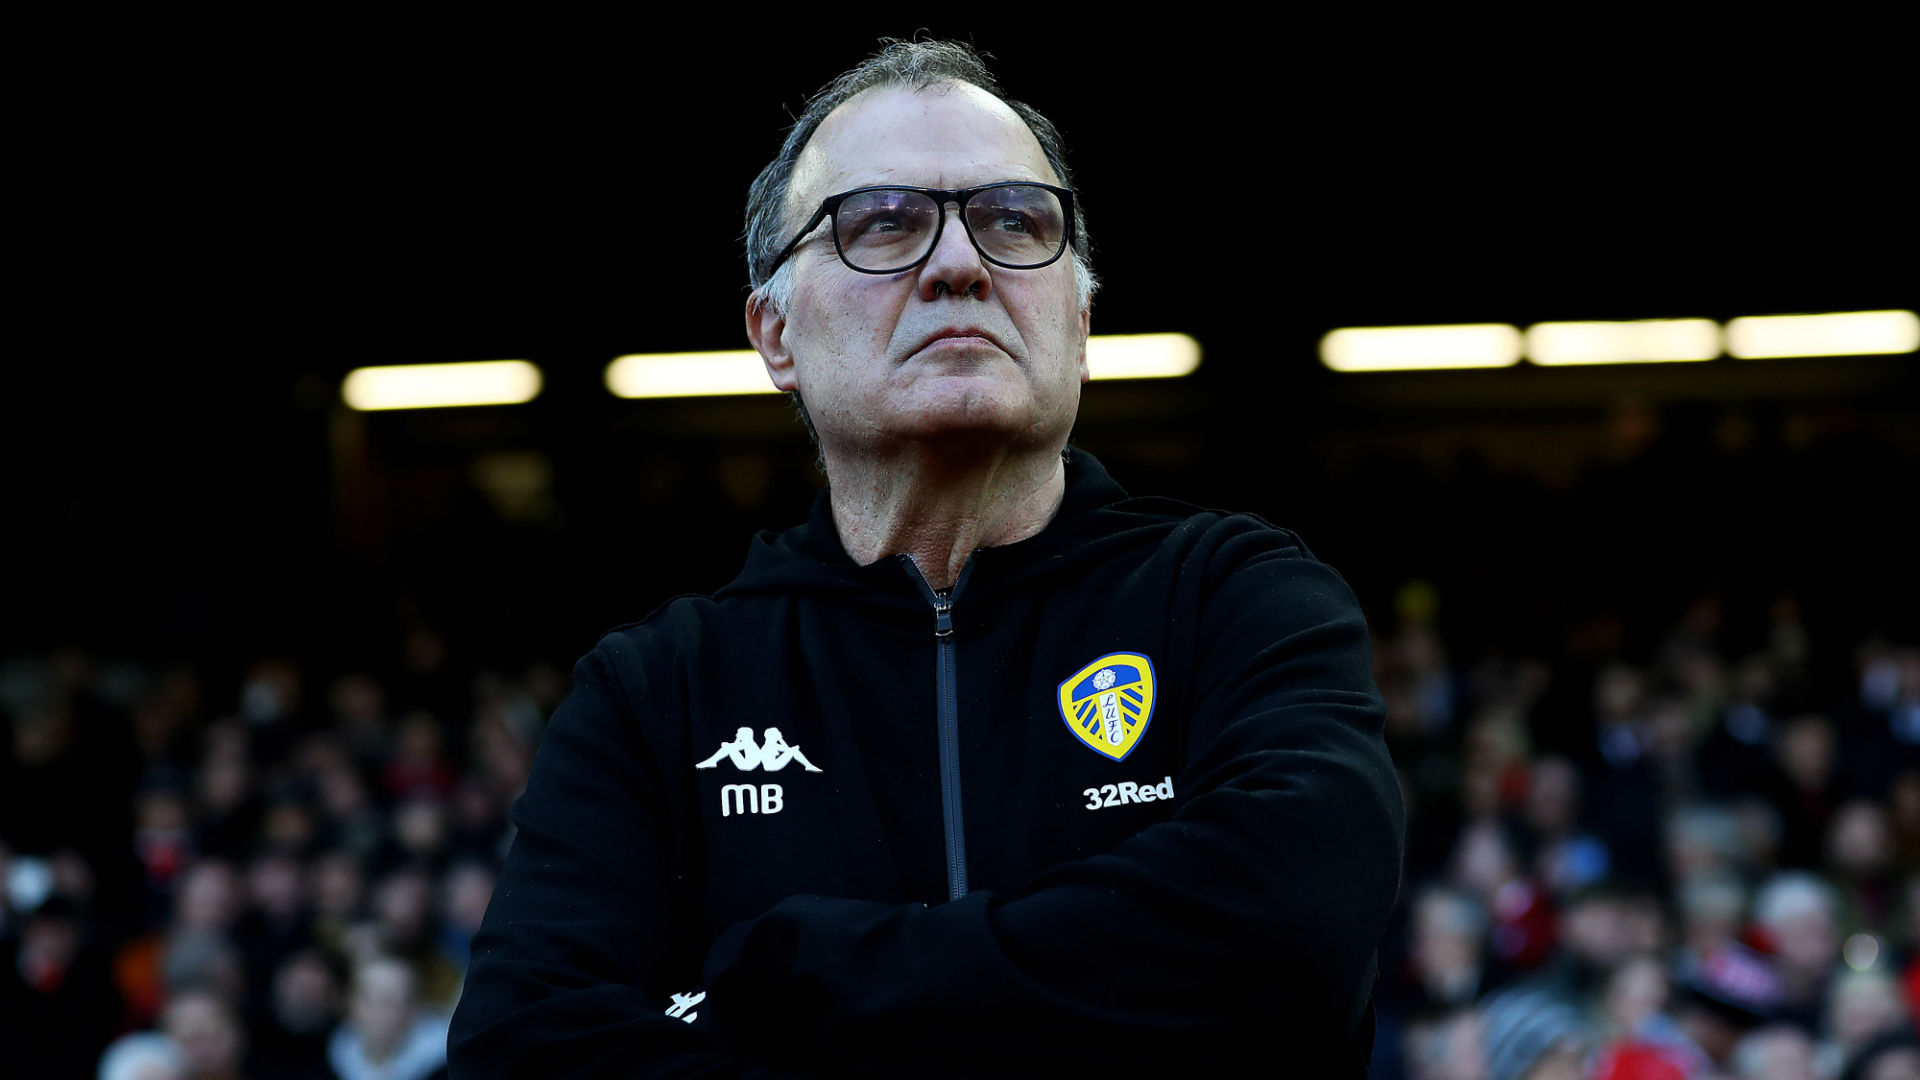 Bielsa's Derby County dossier detail 'pretty standard' – OptaPro chief